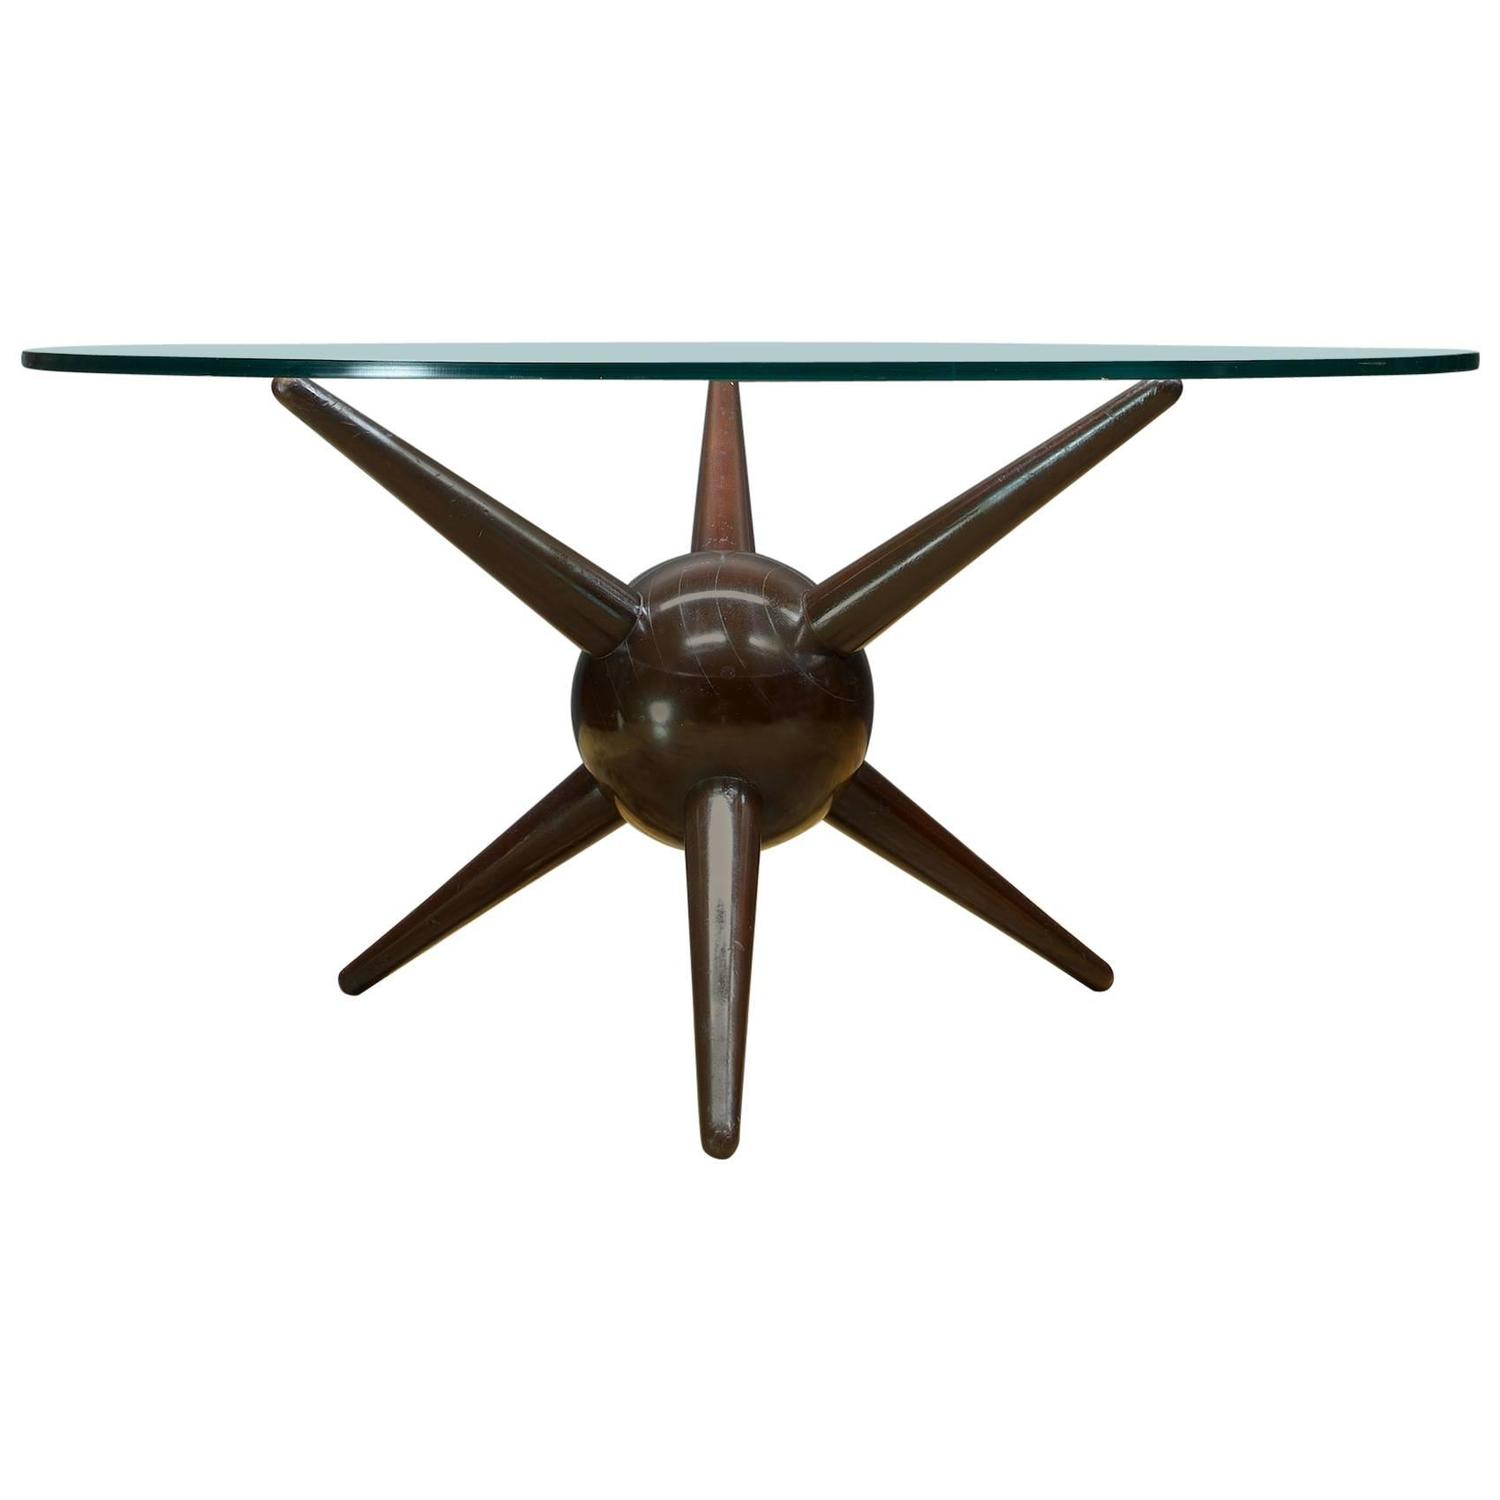 Extremely Rare Gio Ponti Jack Table For Sale at 1stdibs